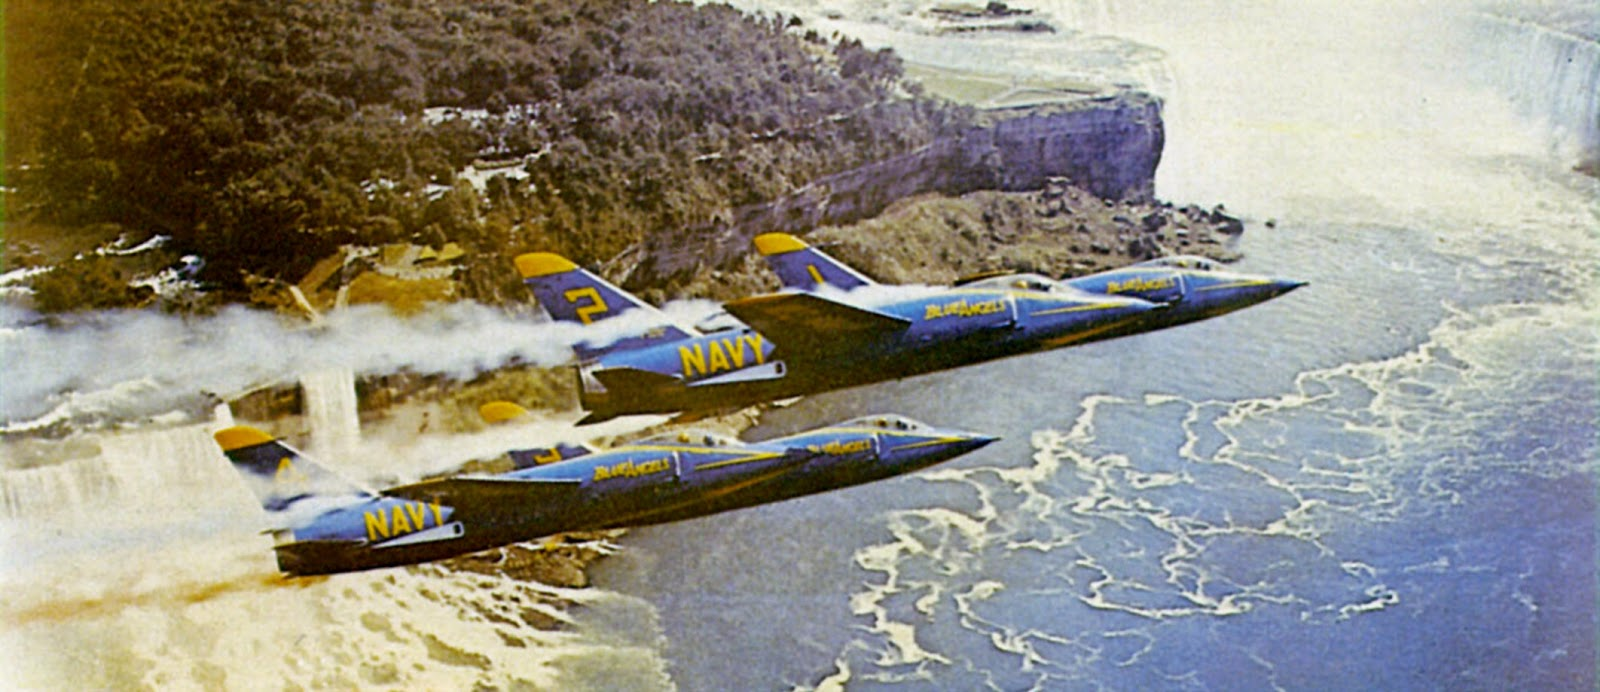 Ultimate Collection Of Rare Historical Photos. A Big Piece Of History (200 Pictures) - Blue Angels